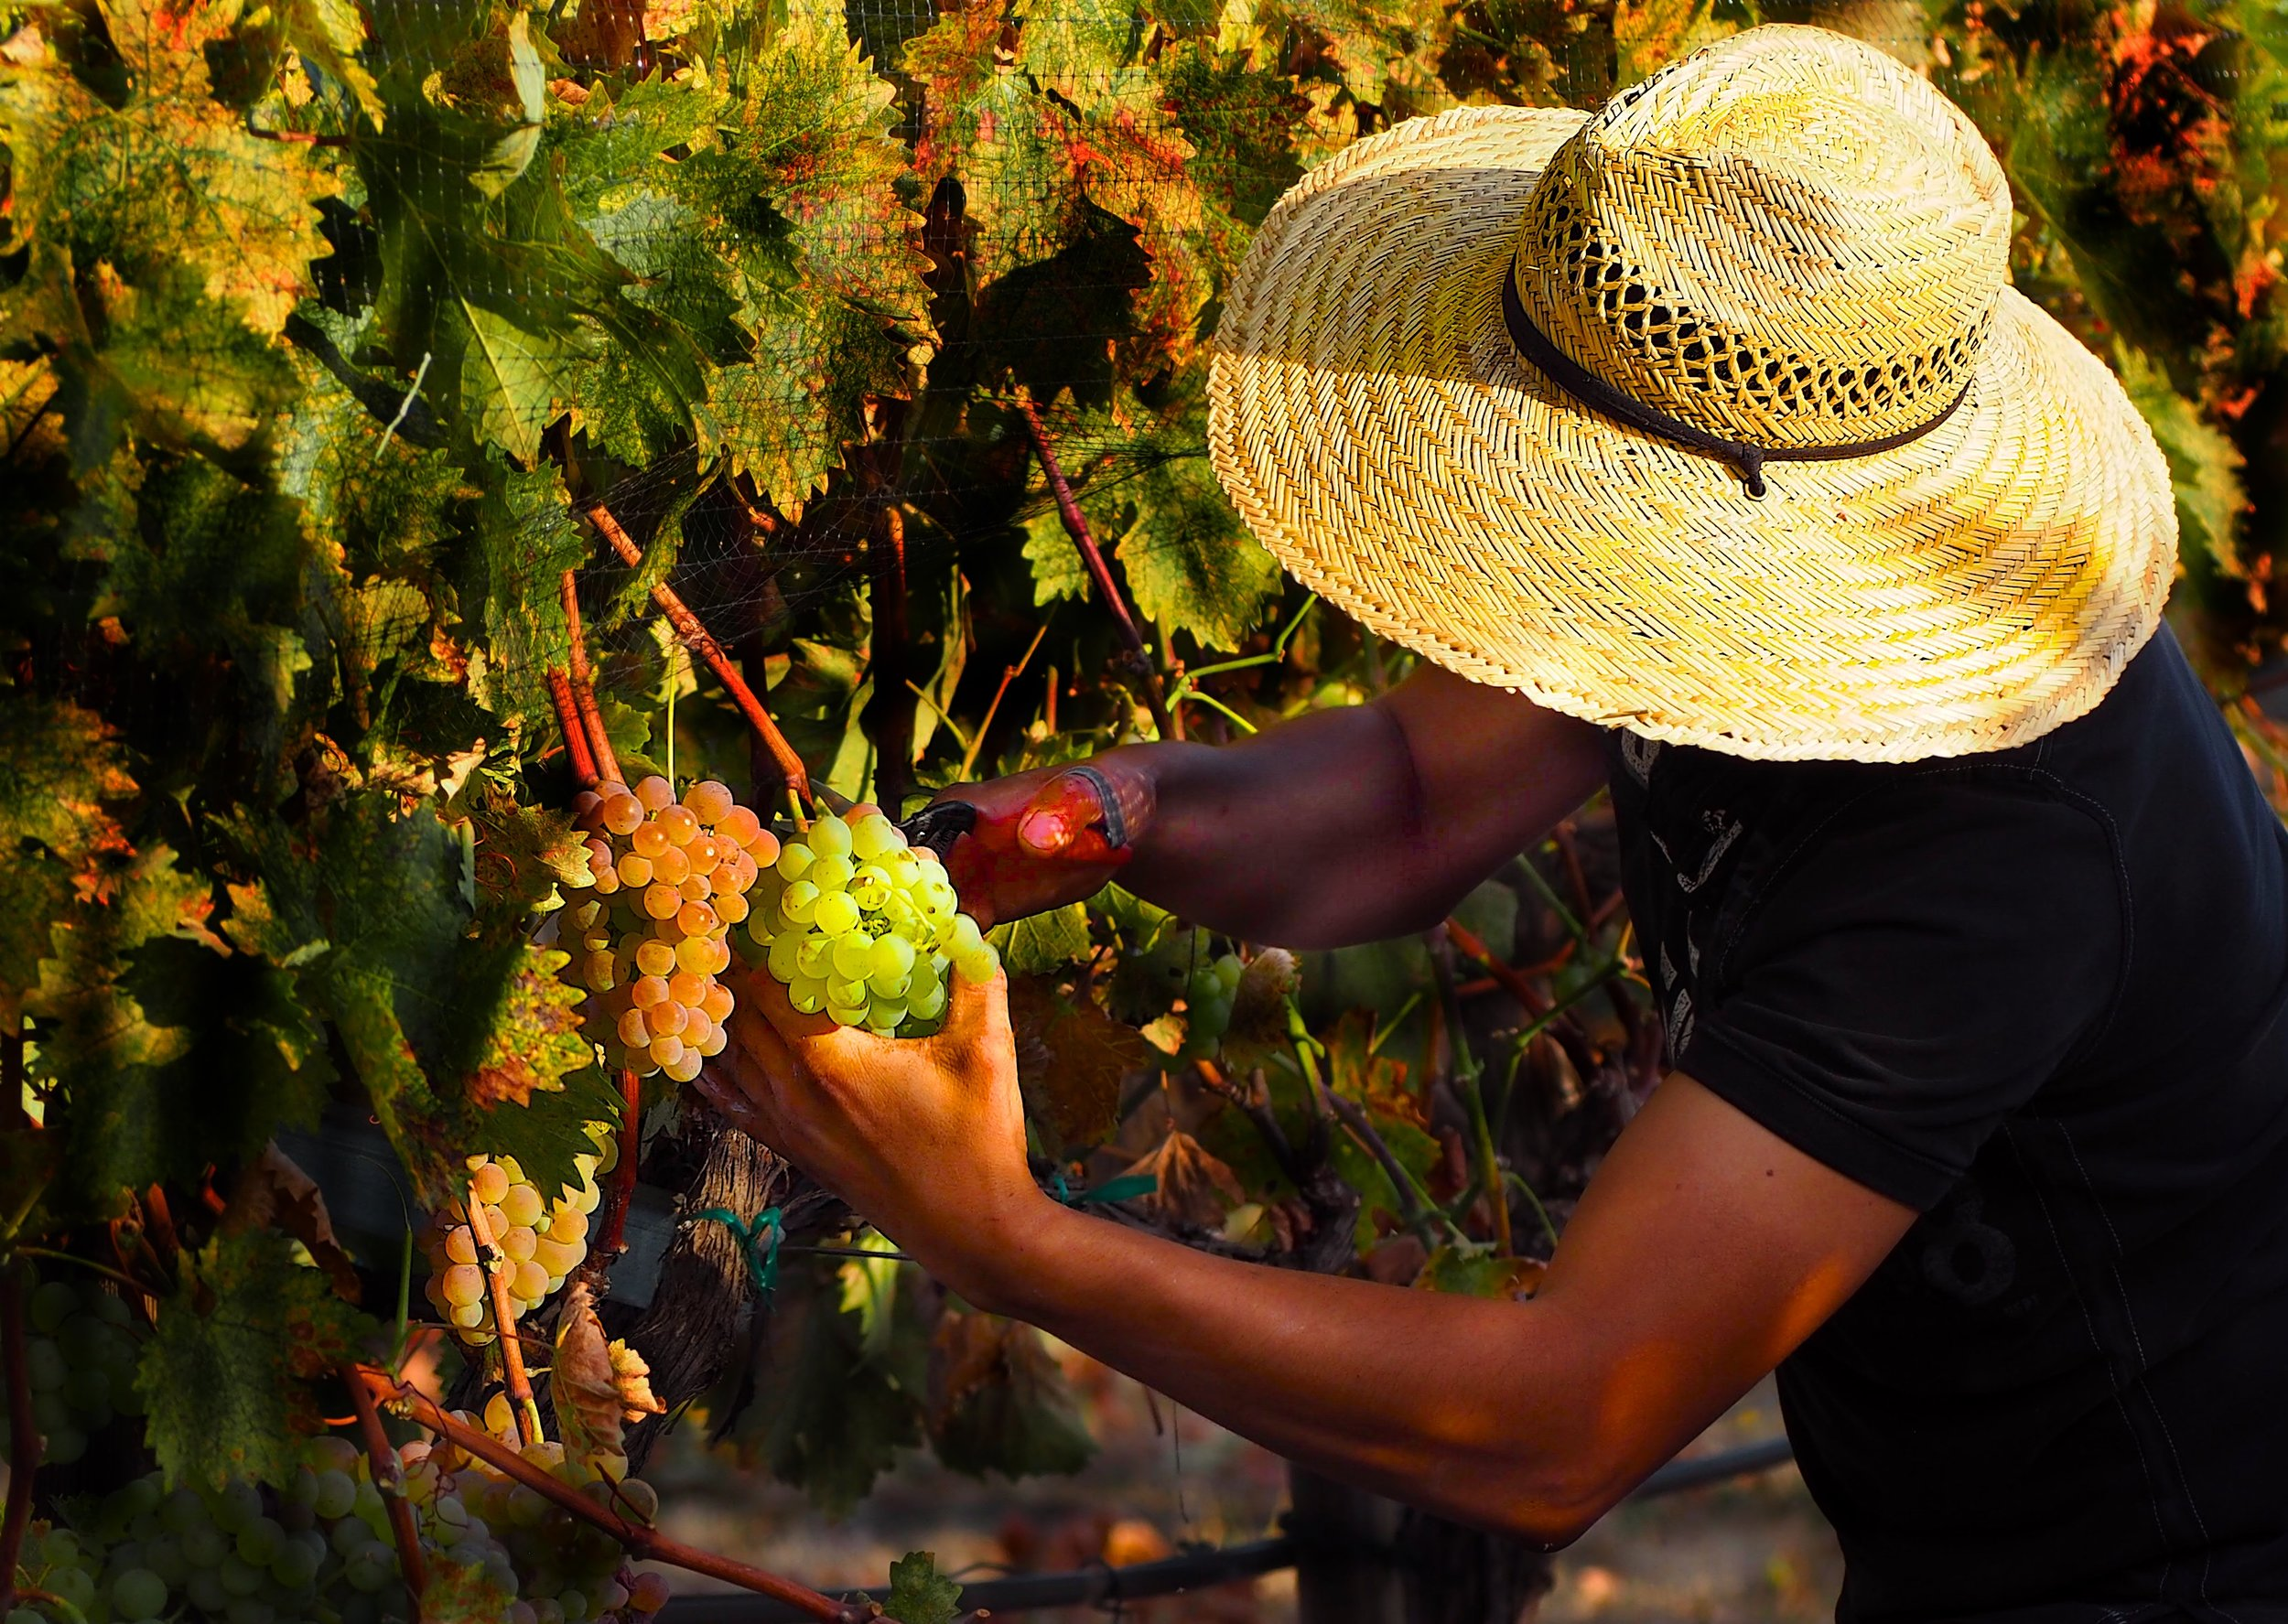 The Troon Vineyard crew picking the grapes they grew. This is Vermentino bound for Troon Black Label Vermentino after a year in barrel.